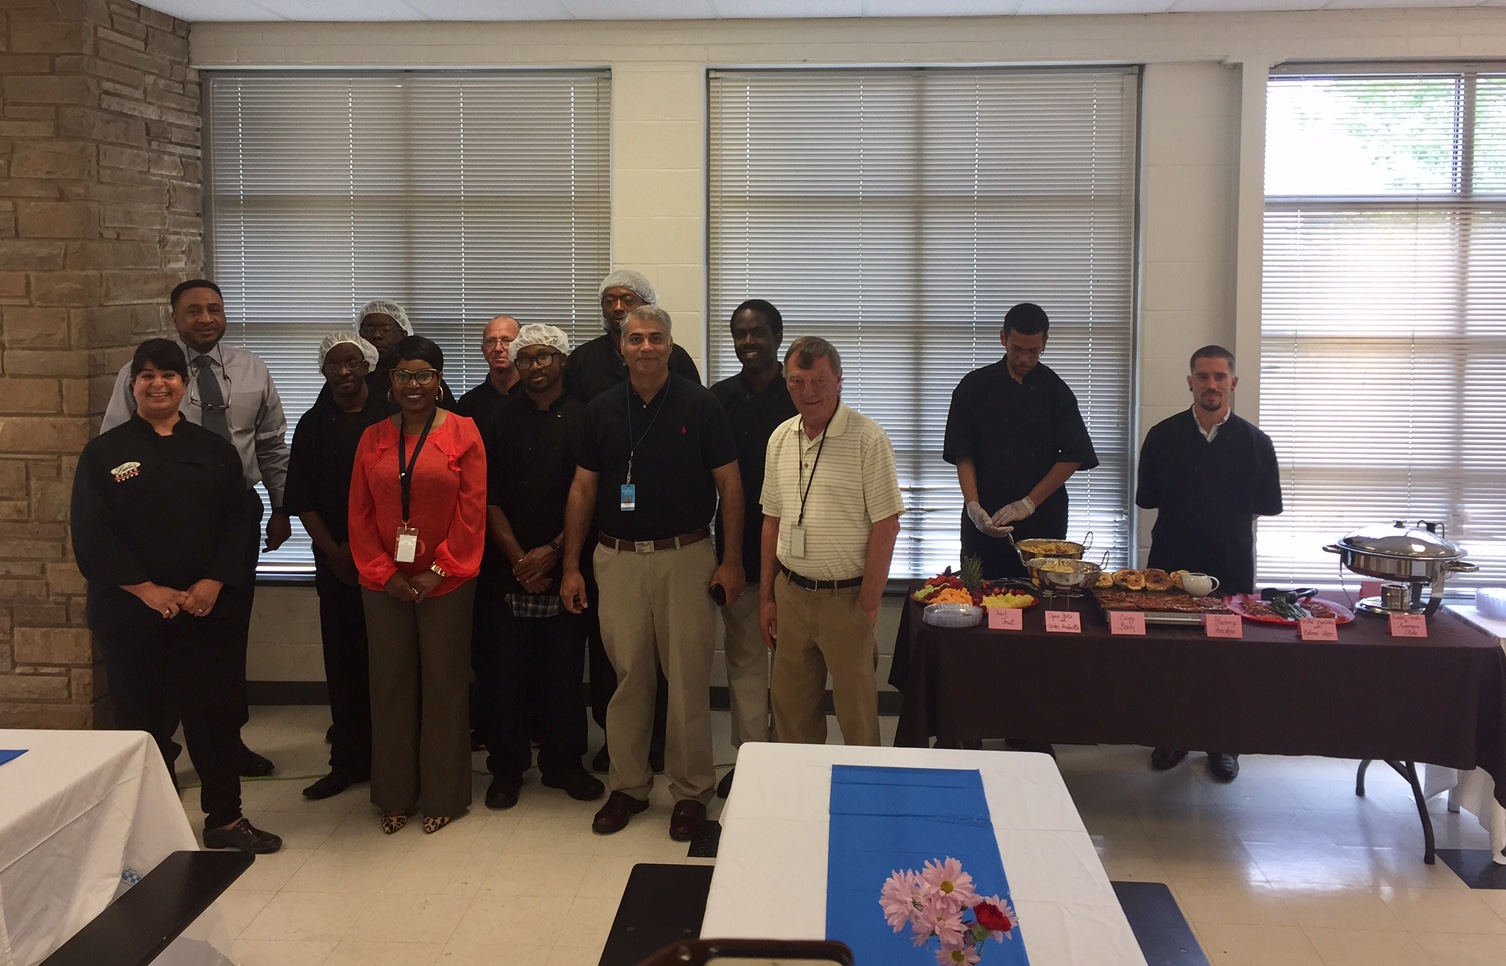 freshpoint-raleigh-wake-tech-community-college-south-willimgton-mens-shelter-food-waste-3